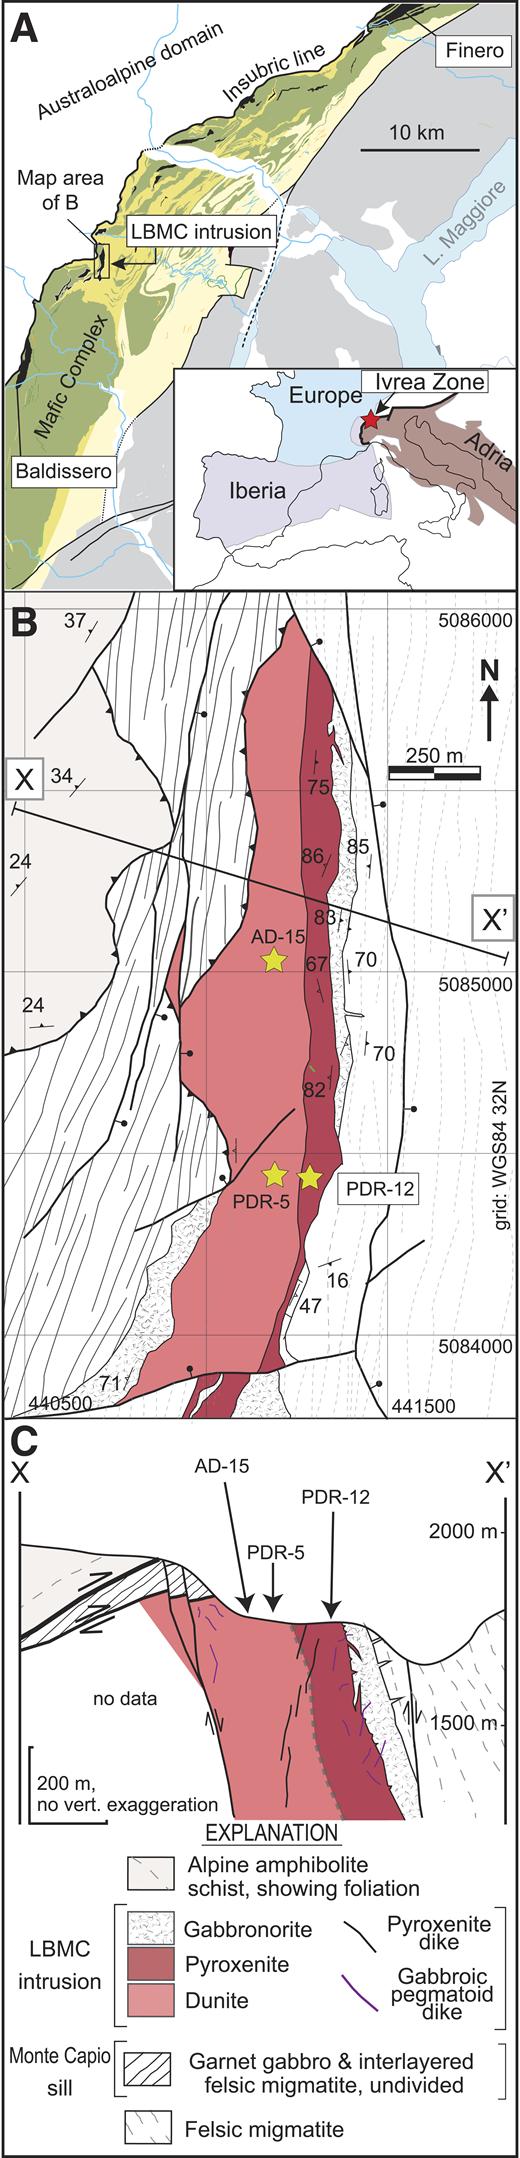 A: Regional geological map showing location of La Balma–Monte Capio (LBMC) intrusion, southern Alps, Italy. See text for discussion of Finero and Baldissero mantle tectonites. B: Local geological map of LBMC intrusion, with locations of dated samples (stars). Coordinates given in UTM system, zone 32N. C: Cross section through LBMC intrusion.